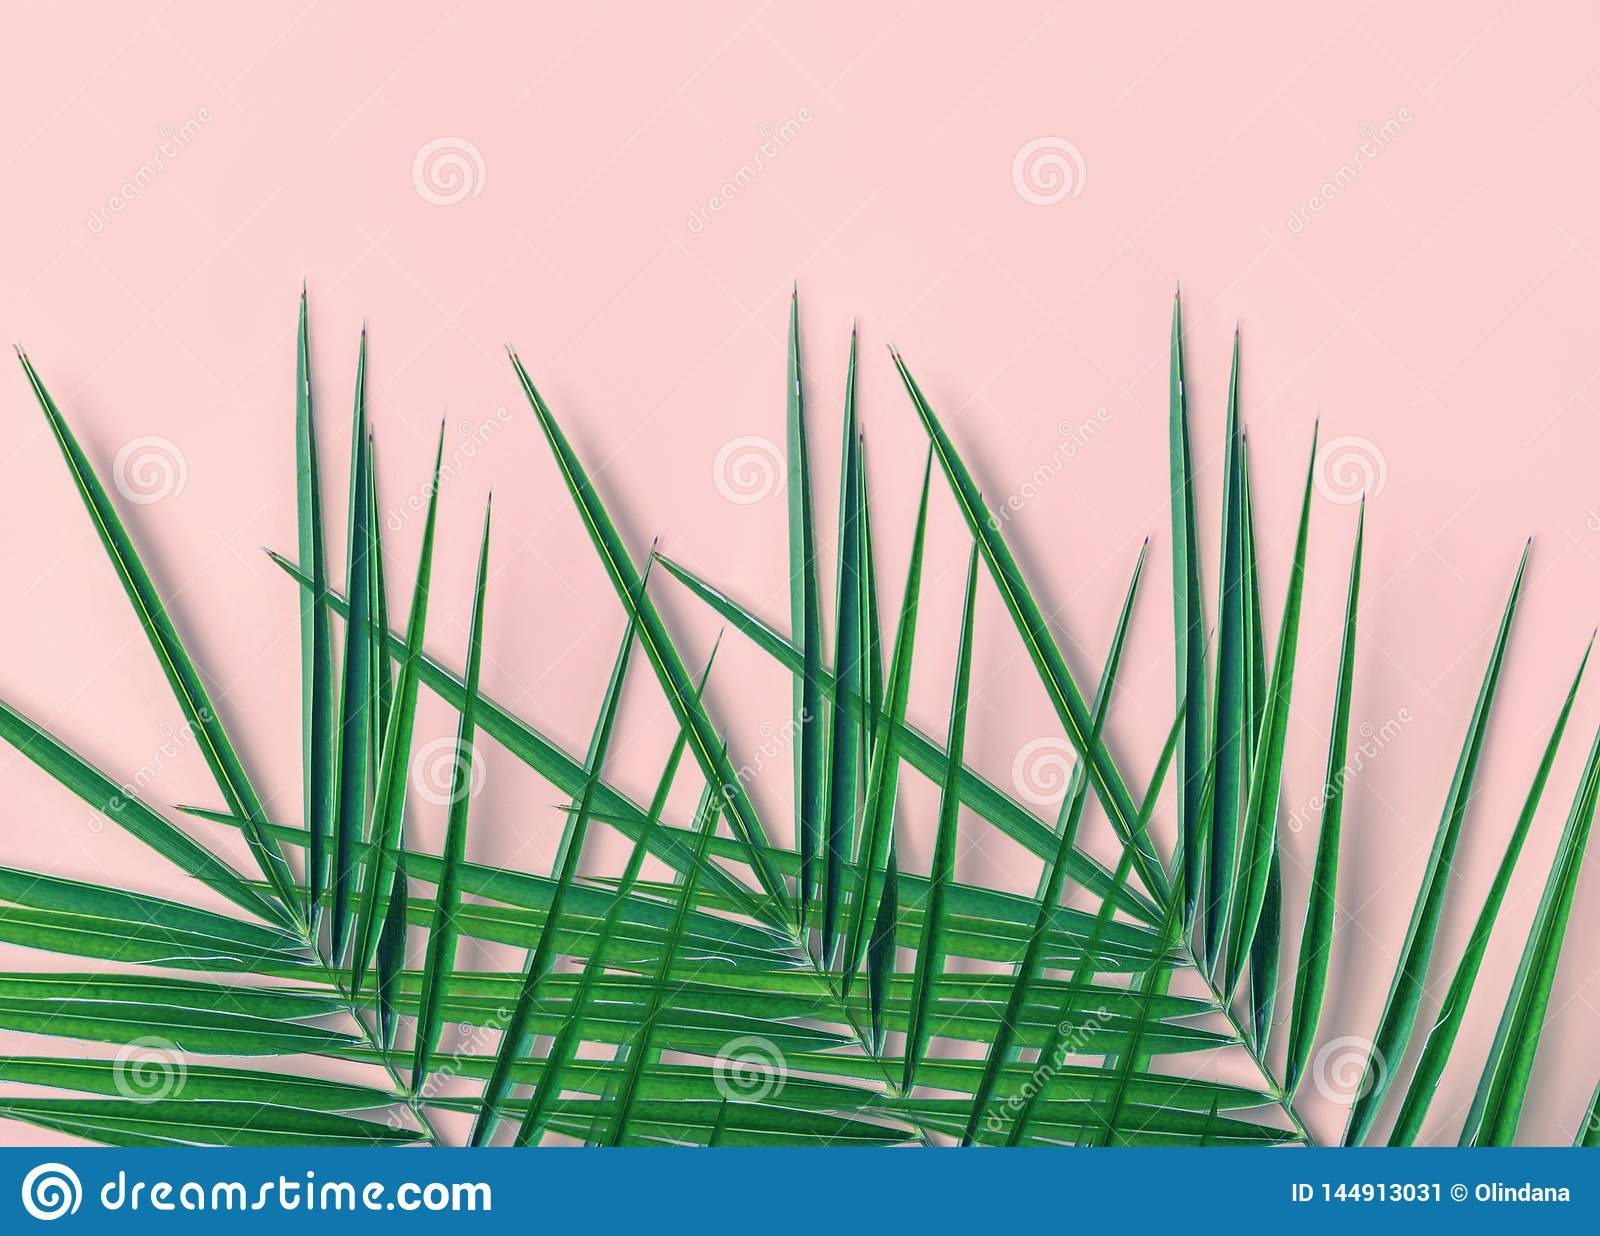 Tropical Nature Background. Spiky Feathery Green Palm Leaves ... on house plant with peach blooms, house plant with jagged leaves, house plant with curly leaves, plant with spikes on leaves, indoor plants with long leaves, house plant identification leaves, house plant with brown leaves, house plant with green and yellow variegated leaves, house plant with bumpy leaves, house plant with waxy flowers, house plant with striped leaves, house plant with heart shaped leaves, house plant spiky green yellow, house with pink and green plant leaves, house plants with colorful leaves, house plant with fuzzy leaves, house plant with pointed leaves, house plant with big leaves, indoor plants with colorful leaves,